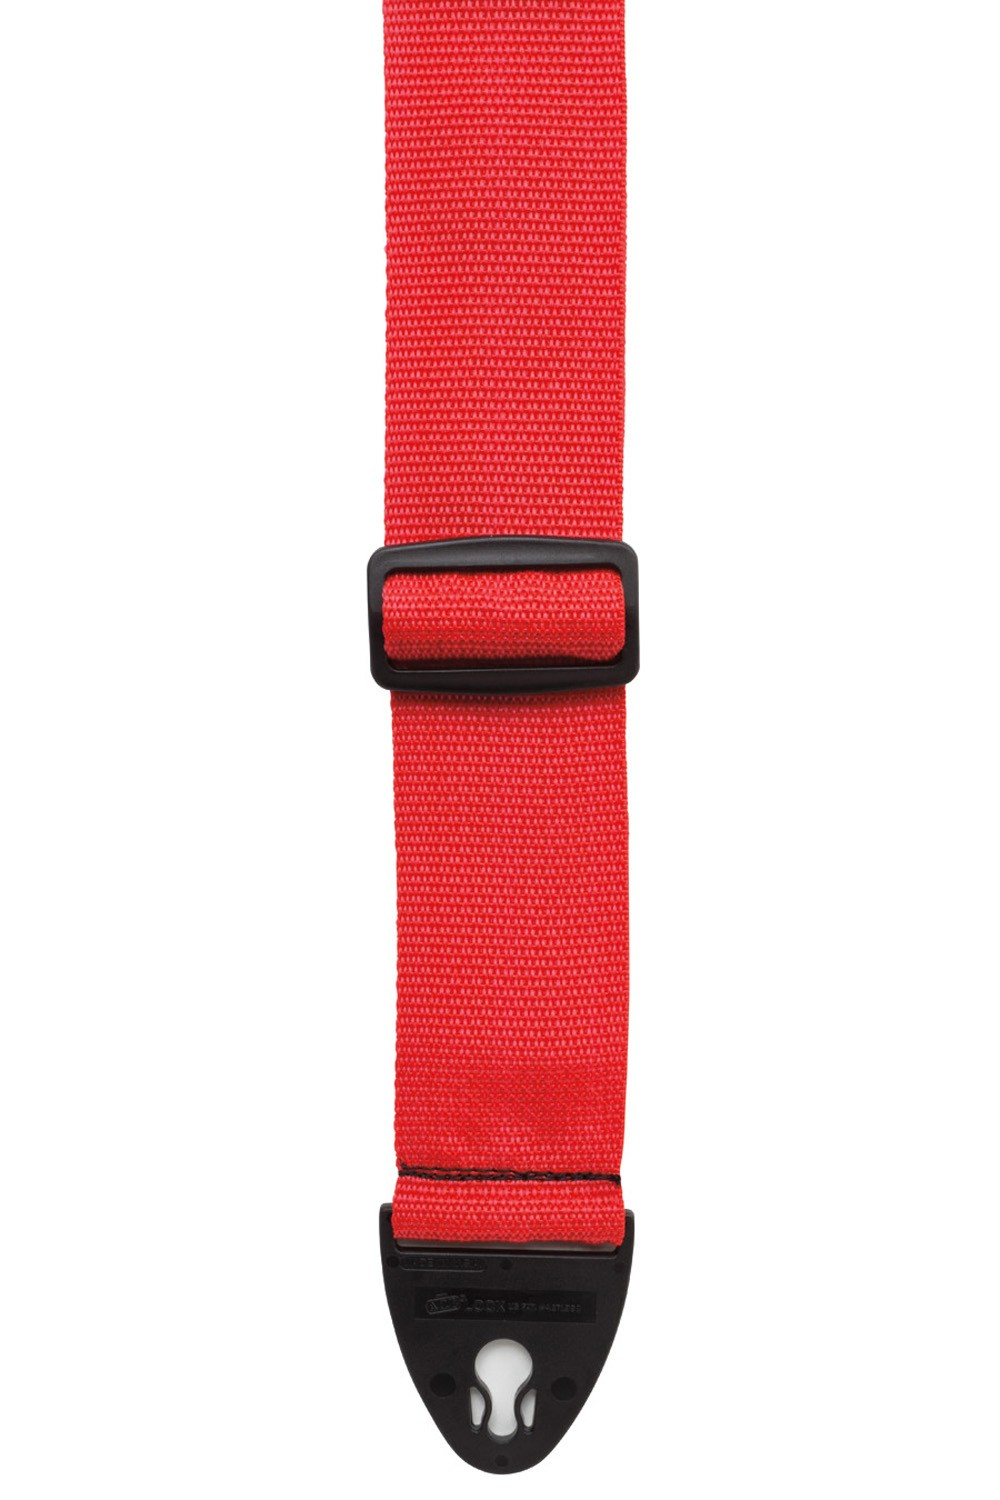 D'Andrea 2 Inch ACE Polyweb Guitar Strap - Red